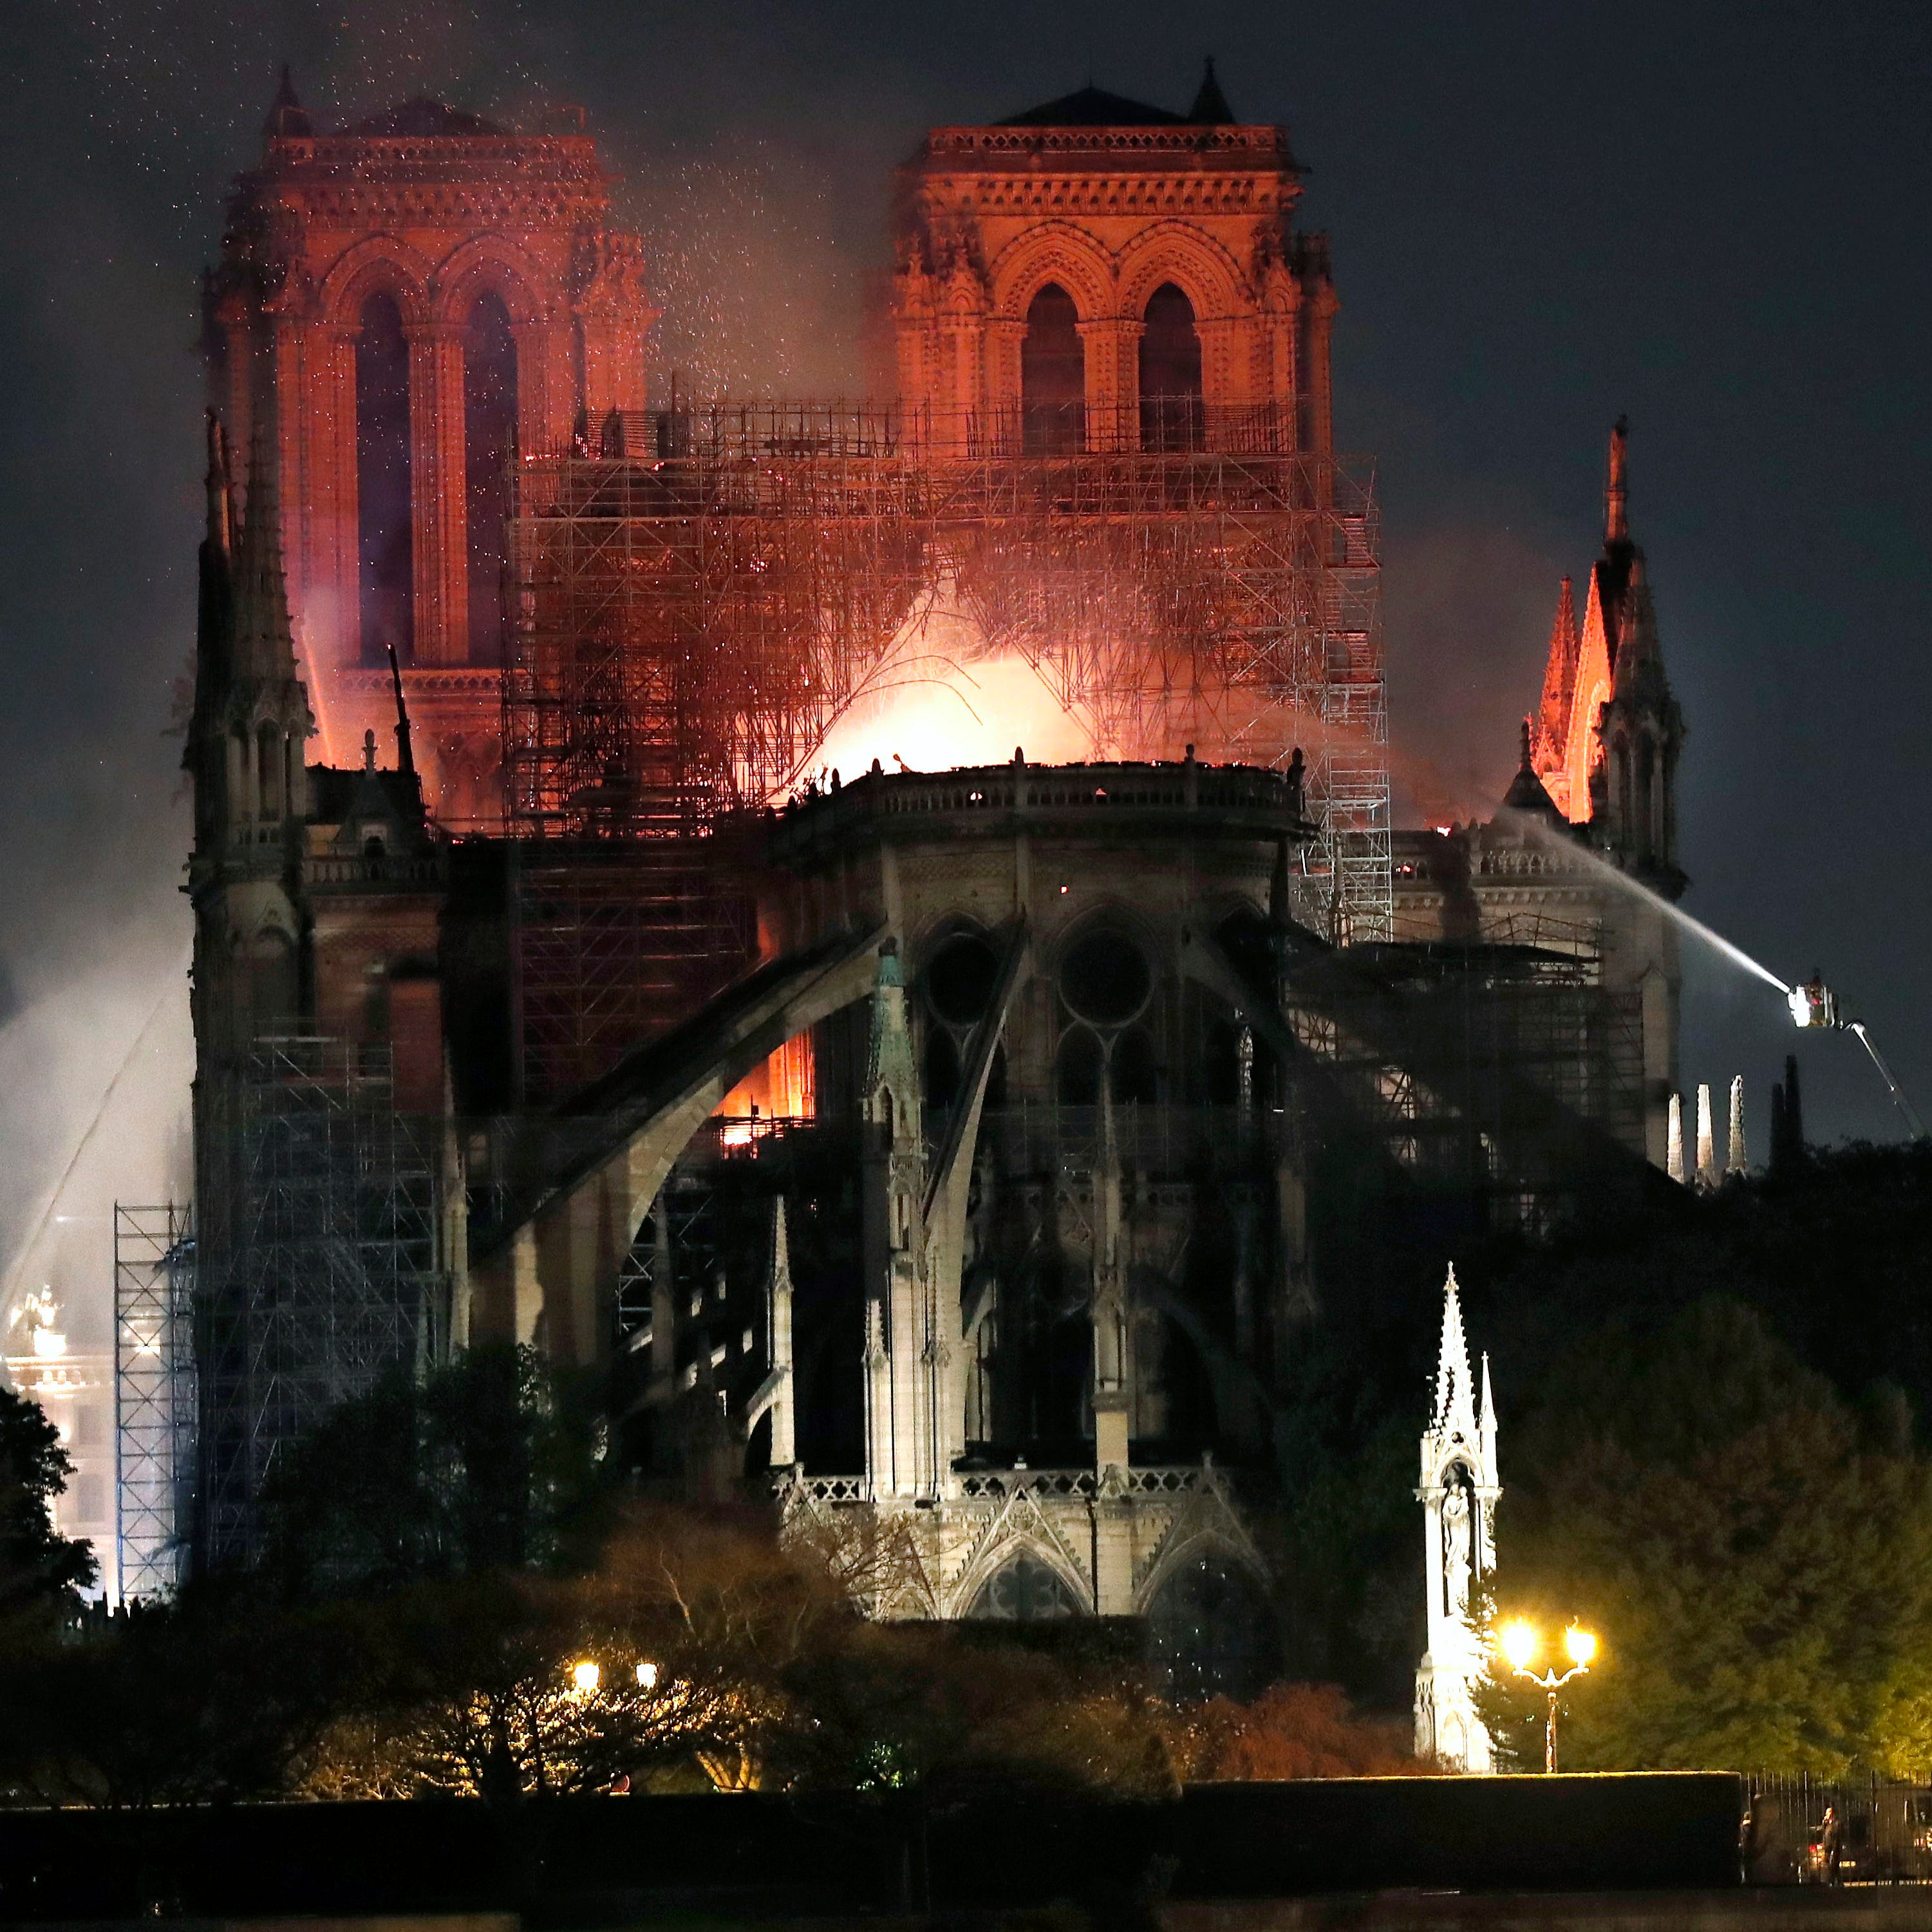 Flames burn the roof of the Notre Dame Cathedral in Paris on April 15, 2019.